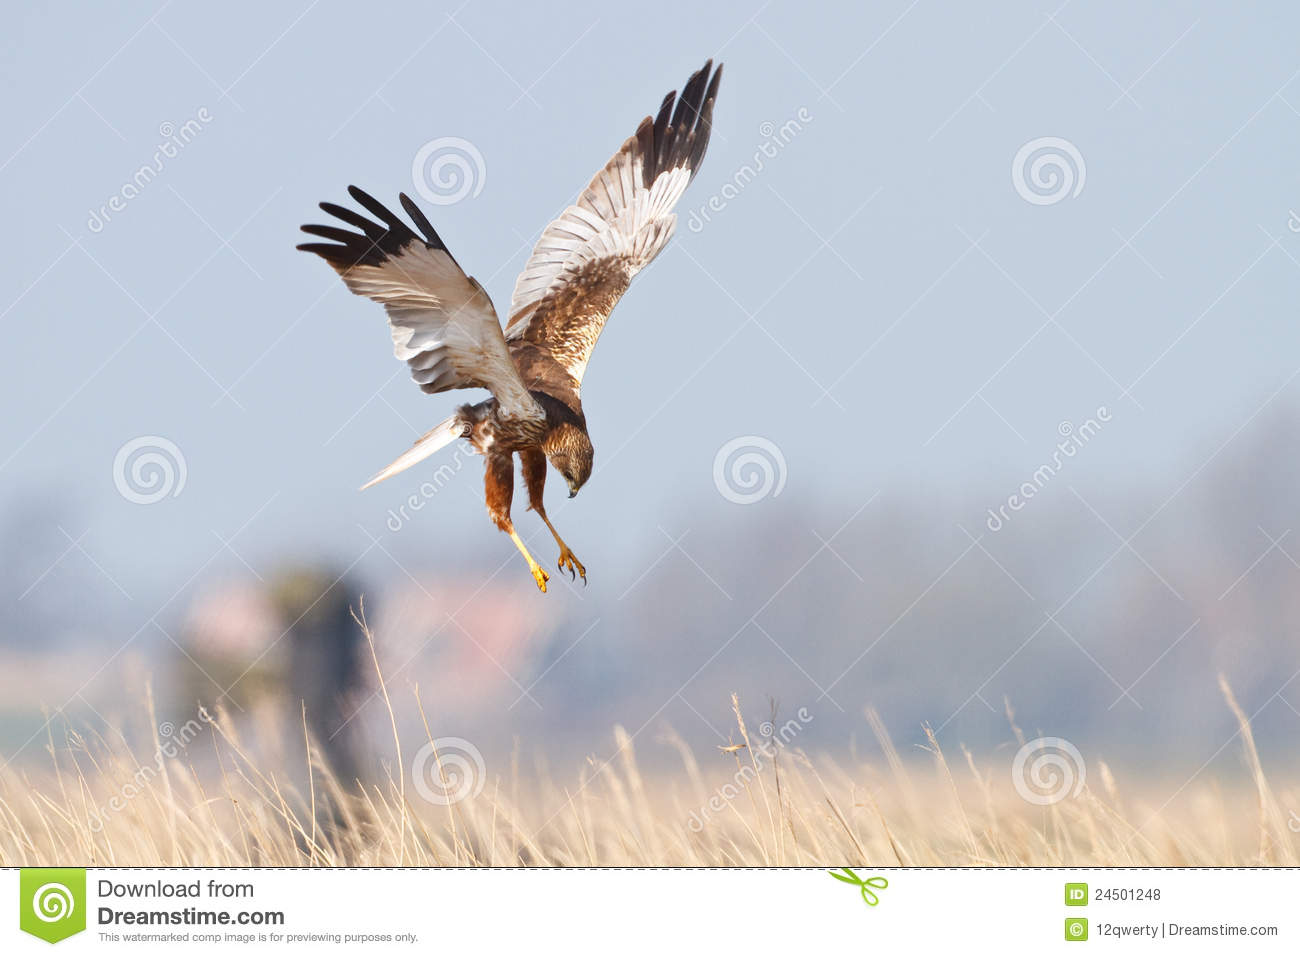 Flying Birds Free Stock Photos Download 3 416 Free Stock: Bird Of Prey In Flight Stock Photo. Image Of Raptor